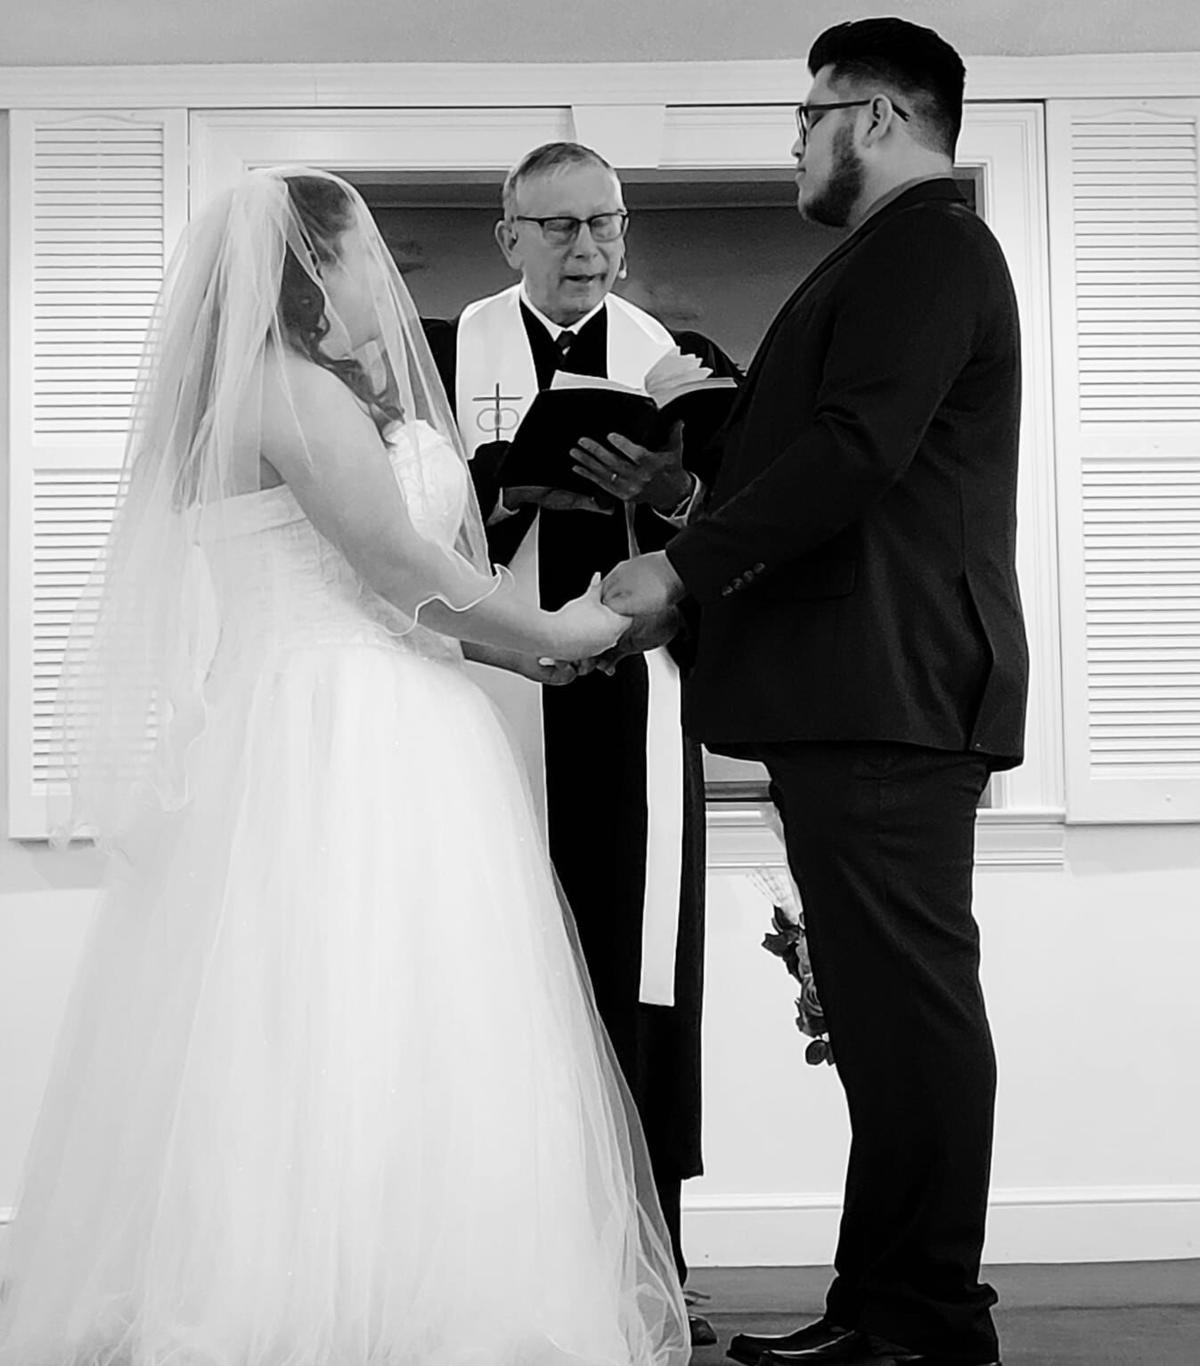 With key documents in hand, couple finally weds